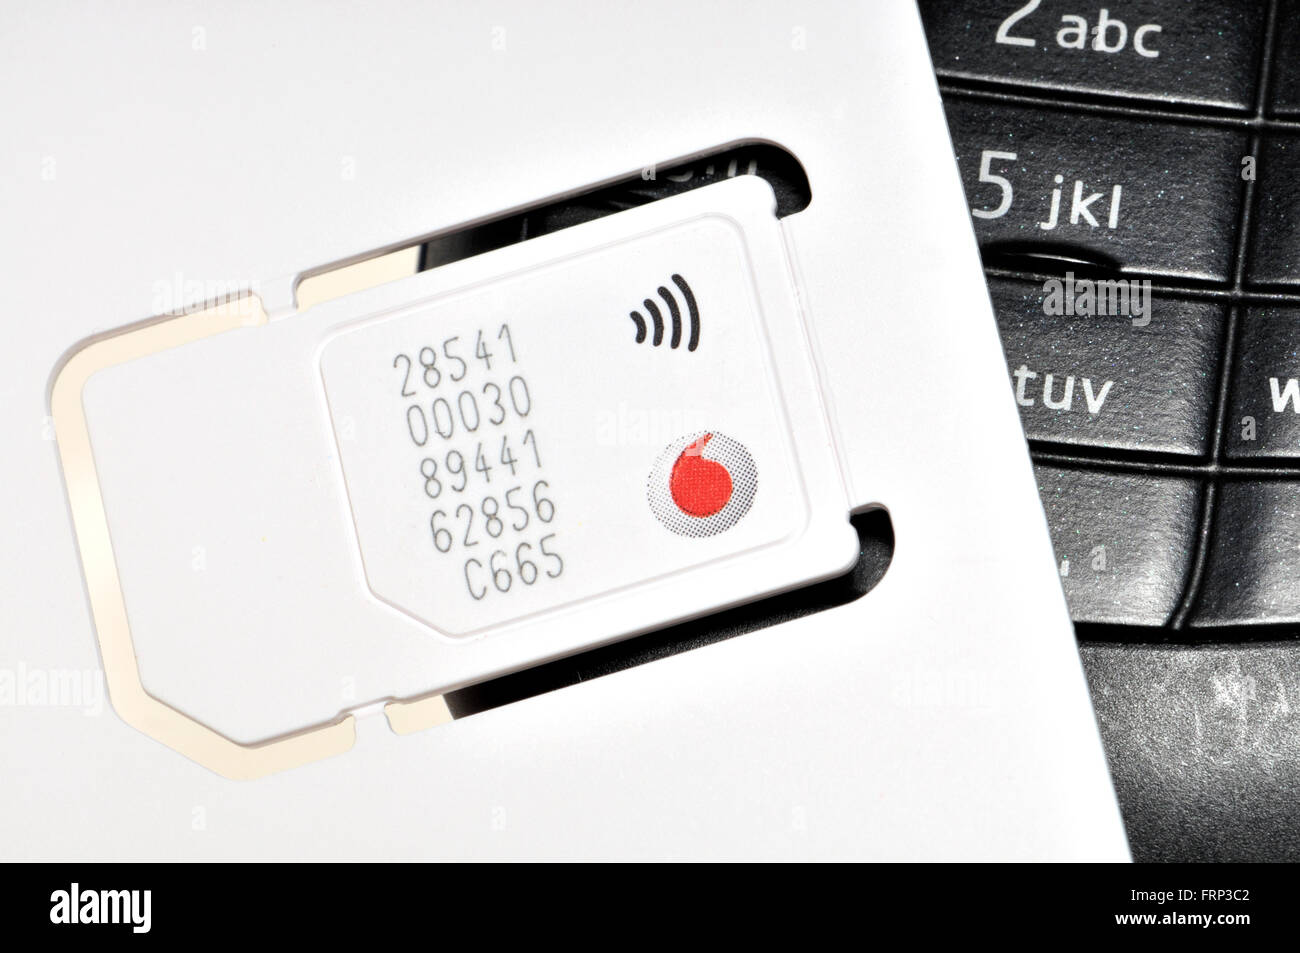 Smartphone Sim card (Vodafone) [Number digitally changed for